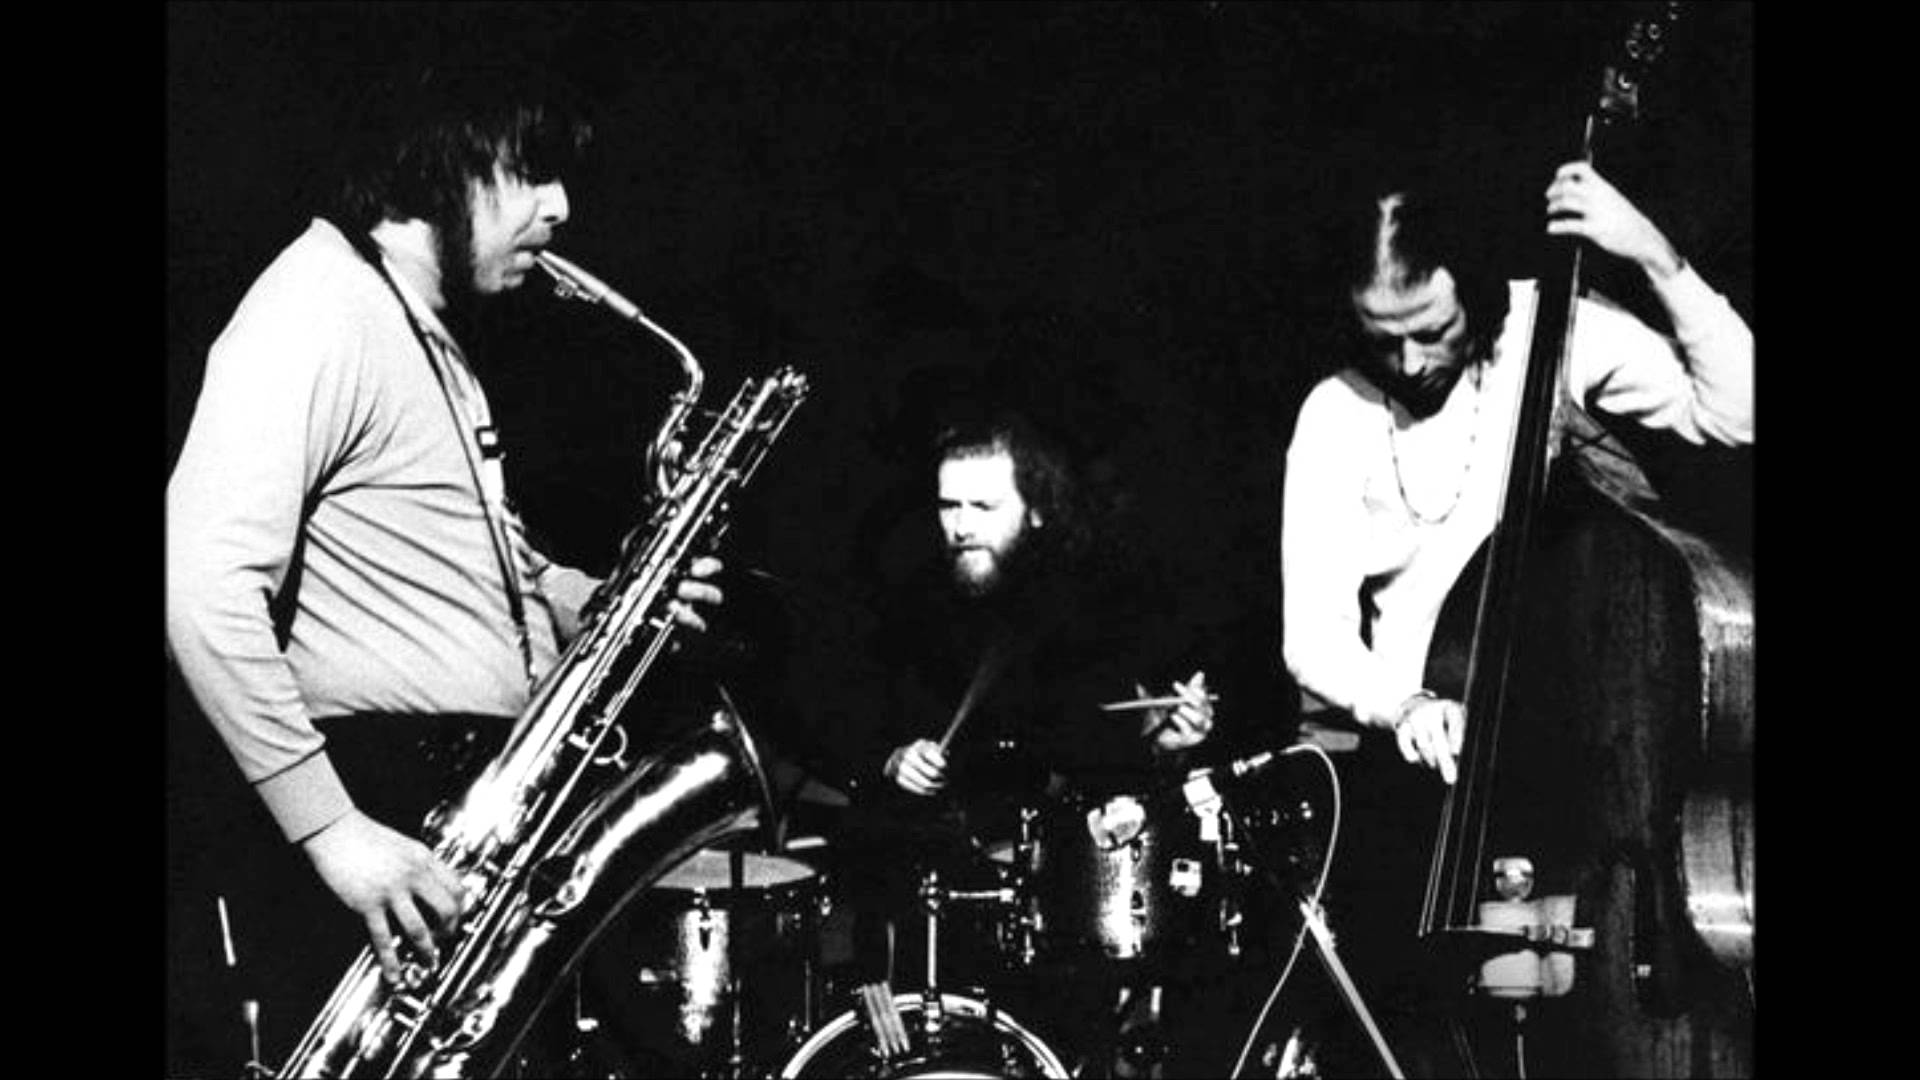 .: interlúdio :. John Surman, Stu Martin, Barre Phillips – The Trio – Conflagration (1971)